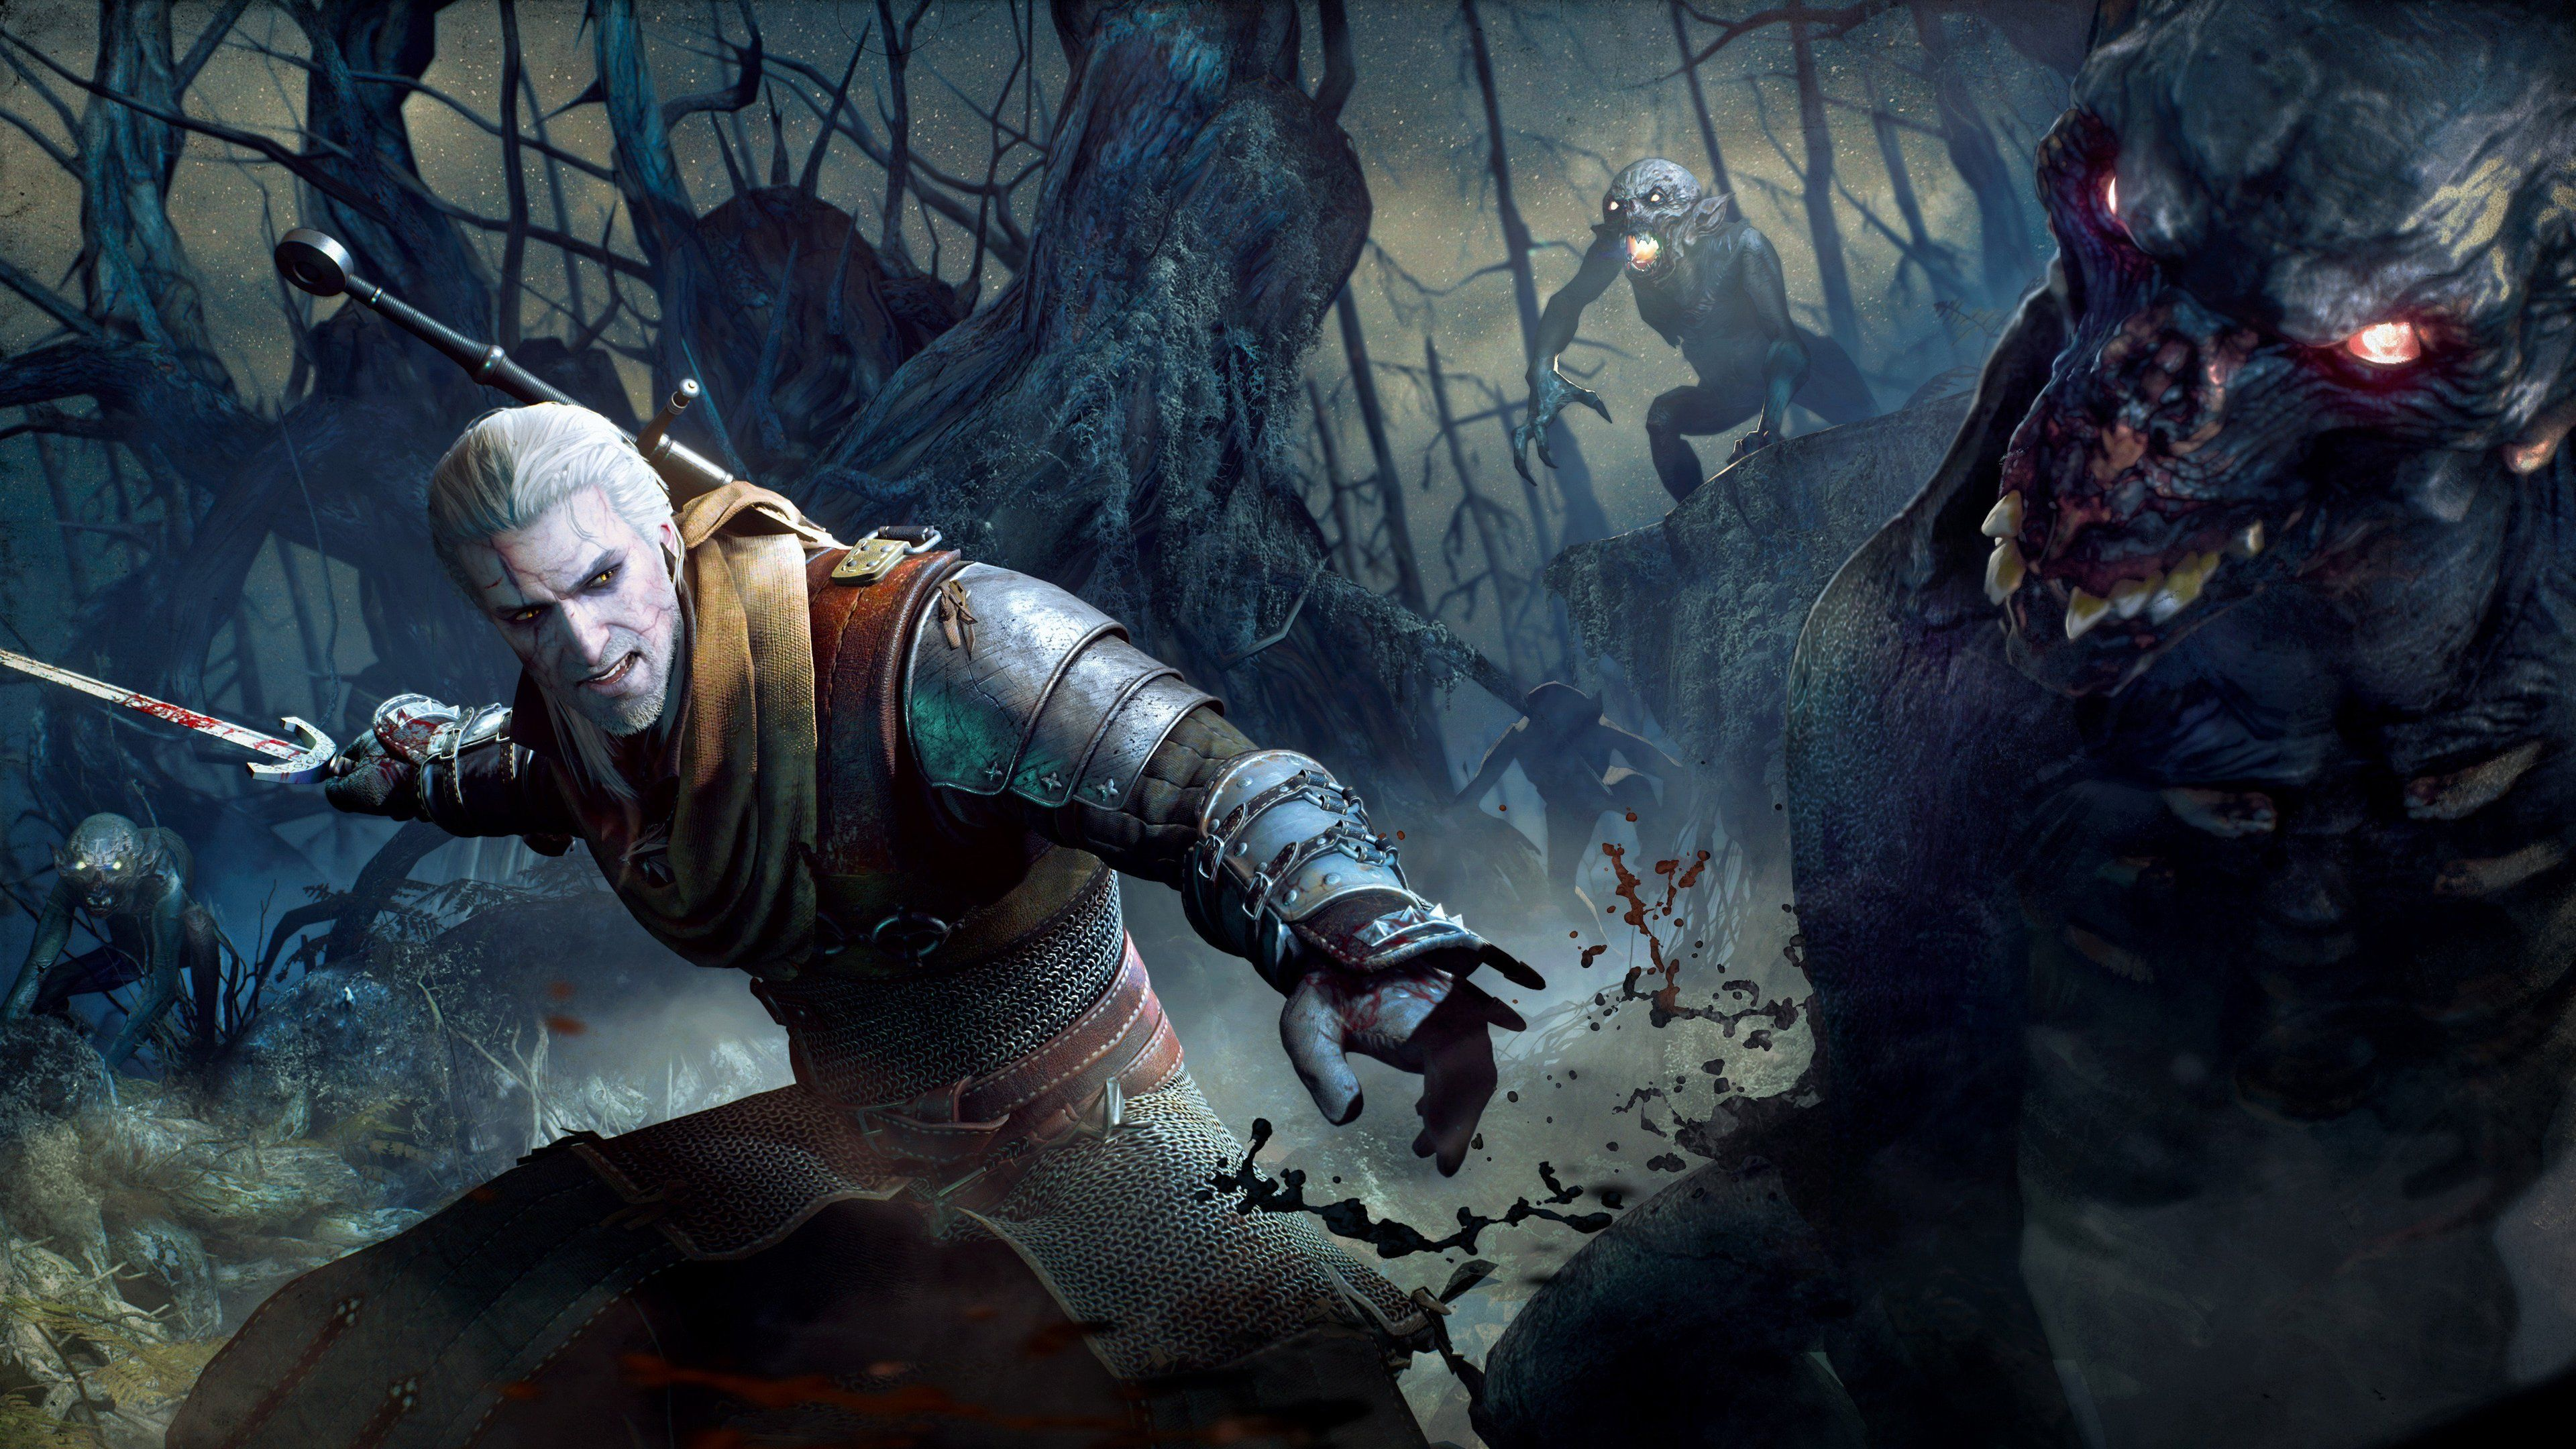 The Witcher 3 Wild Hunt 4k Xbox Games Wallpapers The Witcher 3 Wallpapers Ps Games Wallpapers Pc Games Wallpap The Witcher Pc Games Wallpapers The Witcher 3